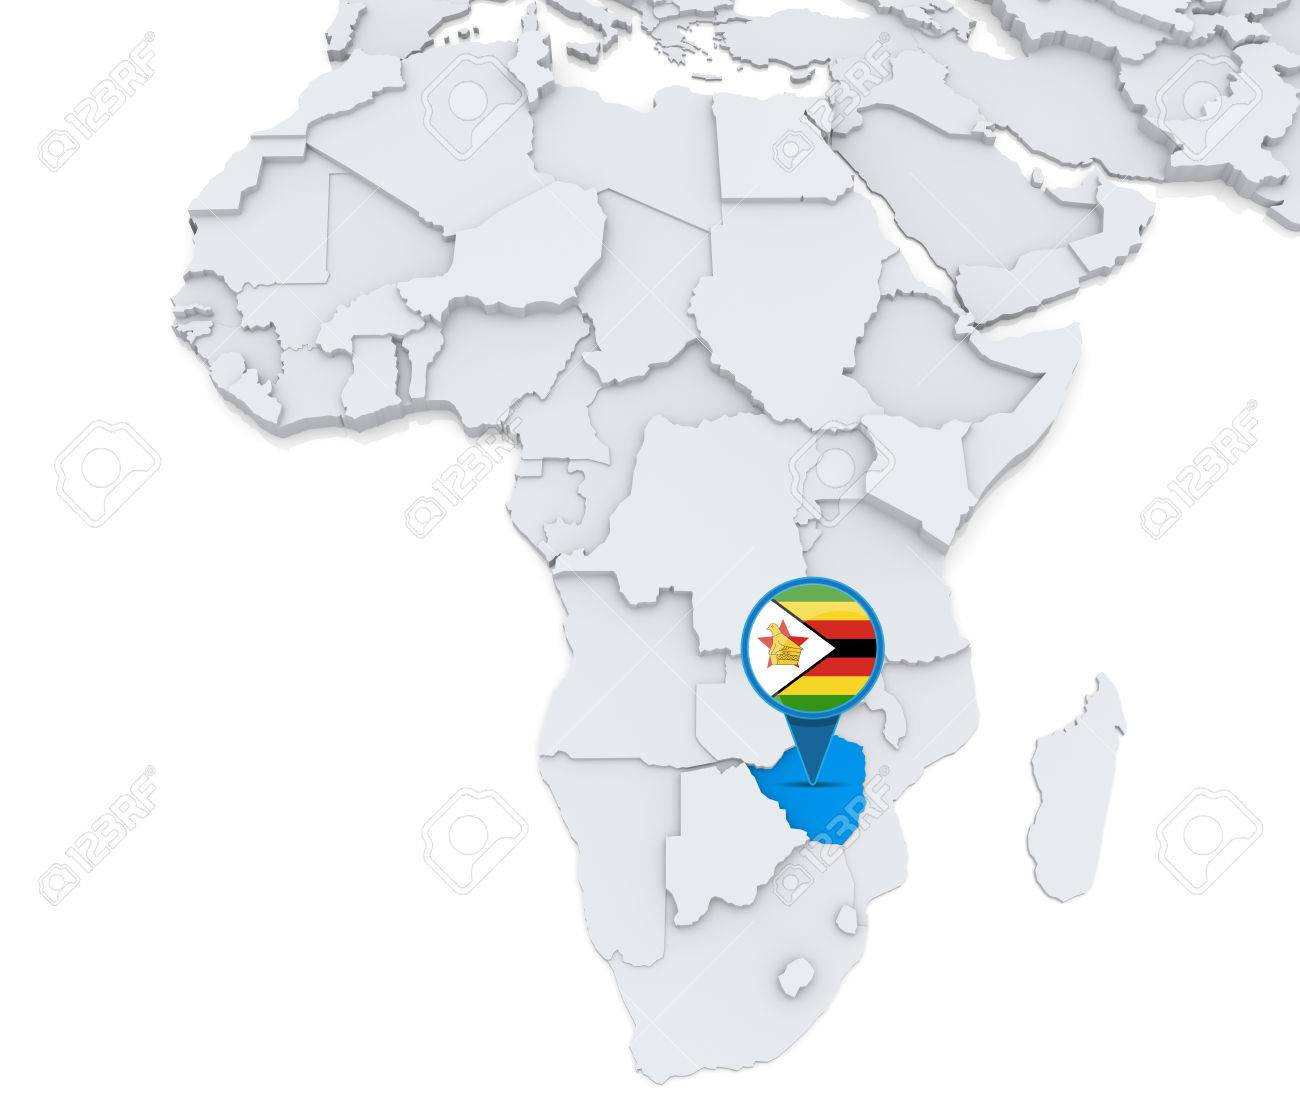 Map Of Africa Showing Zimbabwe.Highlighted Zimbabwe On Map Of Africa With National Flag